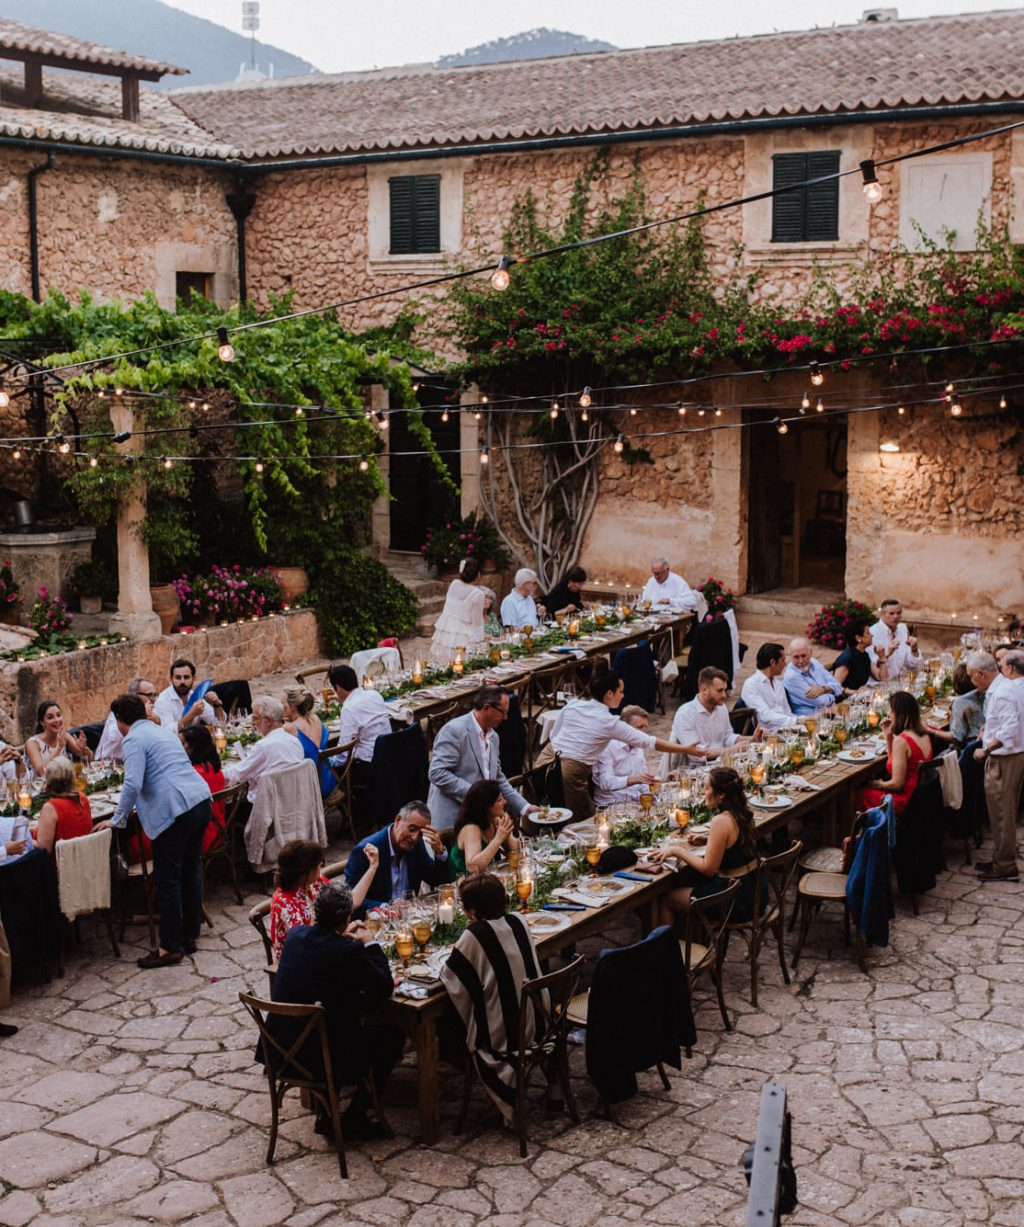 Special place for wedding in Spain